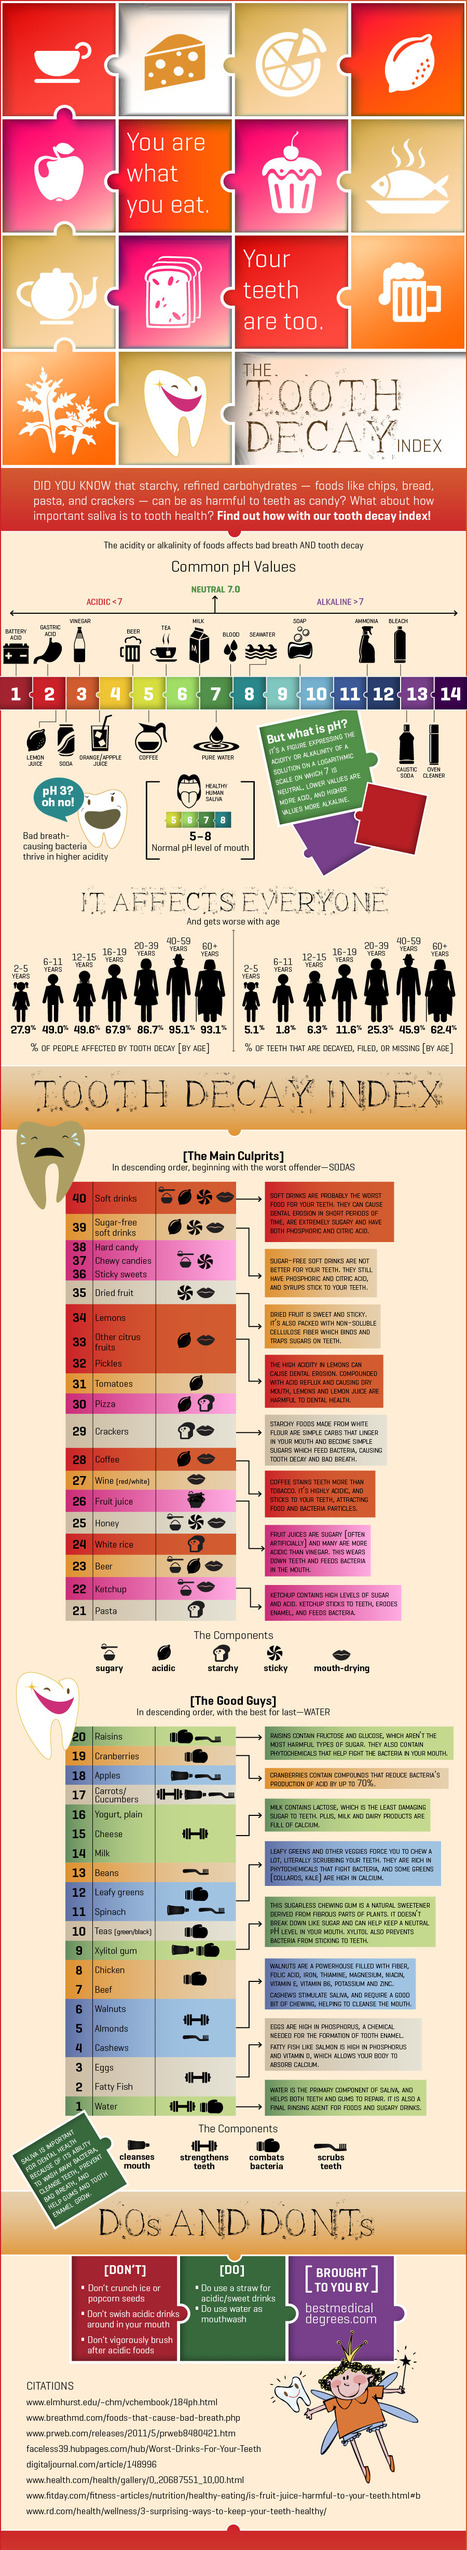 Top Tooth Decay Prevention Tips You Should Start Following From Today | Health & Digital Tech Magazine - 2016 | Scoop.it